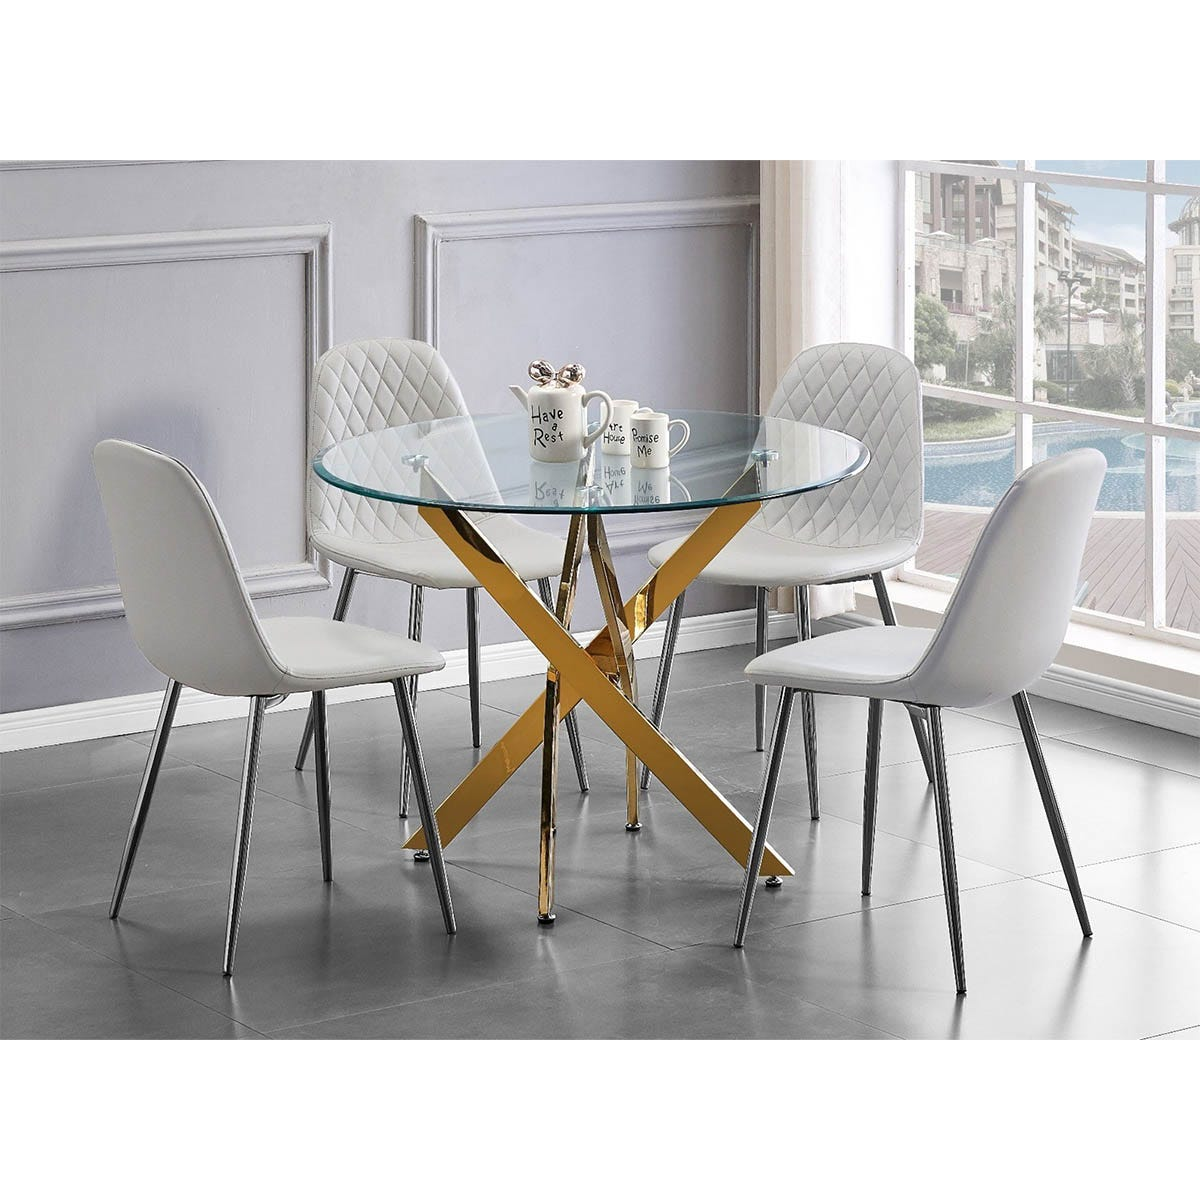 Furniture Box Novara Gold Metal Round Glass Dining Table And 4 White Corona Silver Dining Chairs